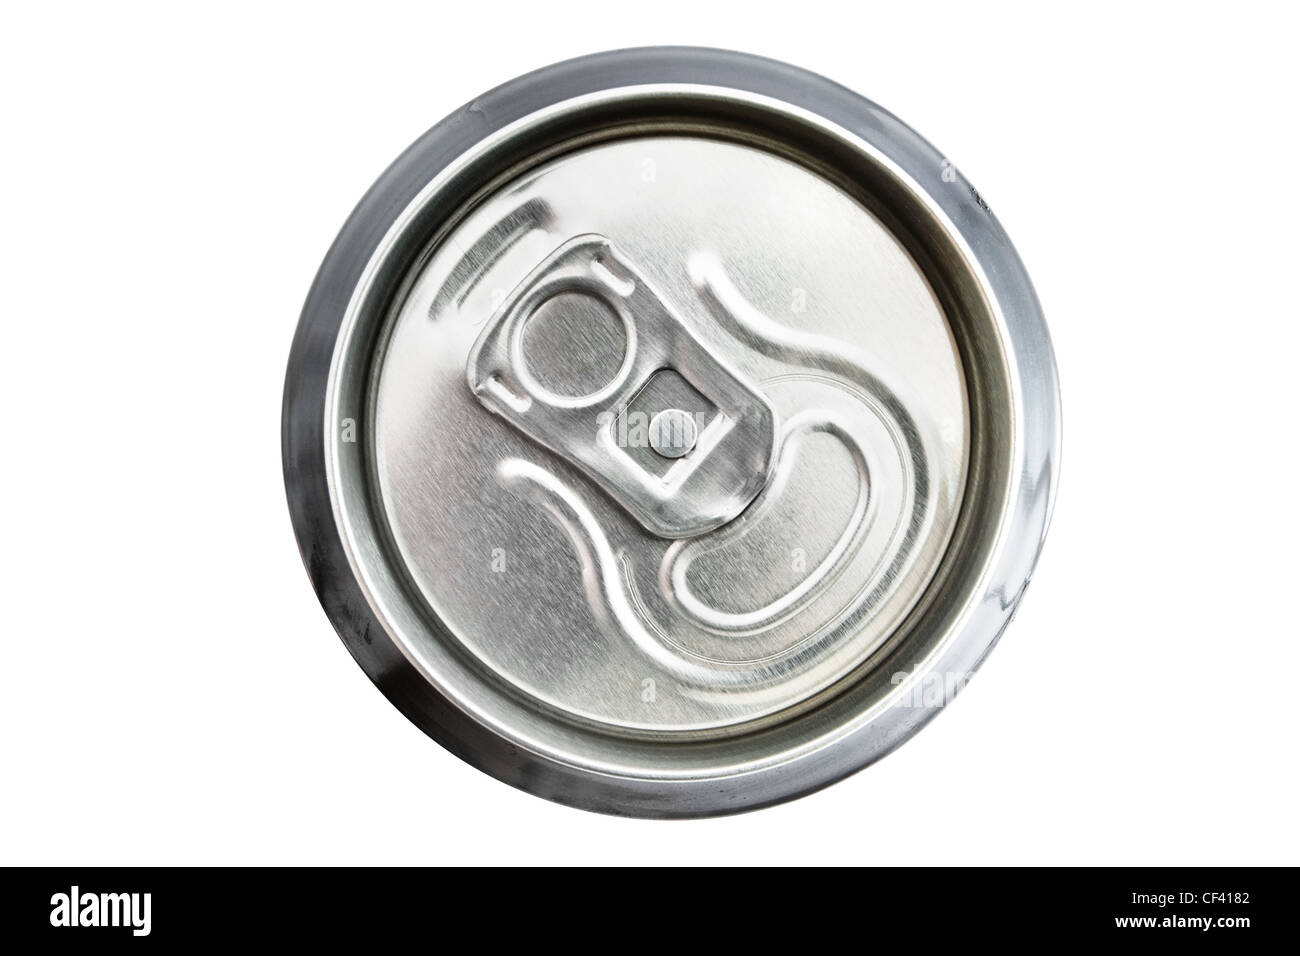 Top view of an unopened drinks can over white - Stock Image